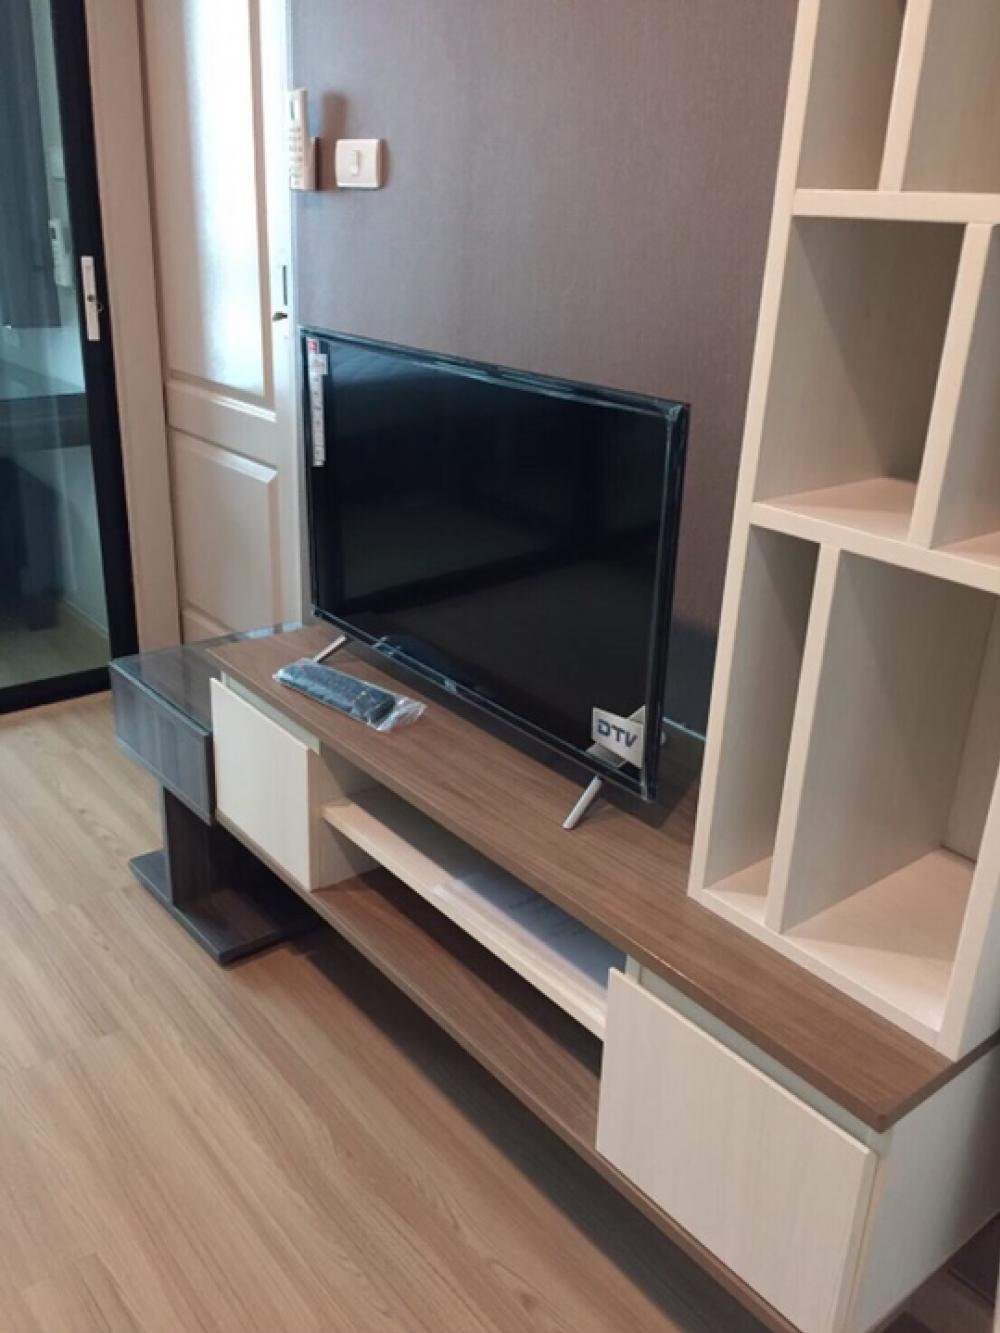 เช่าคอนโดลาดพร้าว เซ็นทรัลลาดพร้าว : For Rent The Uniqe Ladprao26 type 1bed1 bath size 30 sq.m floor 4 fully furnished price 11k MRT Ladprao 150 mete contact porto 061-7304445Line : i-portofc